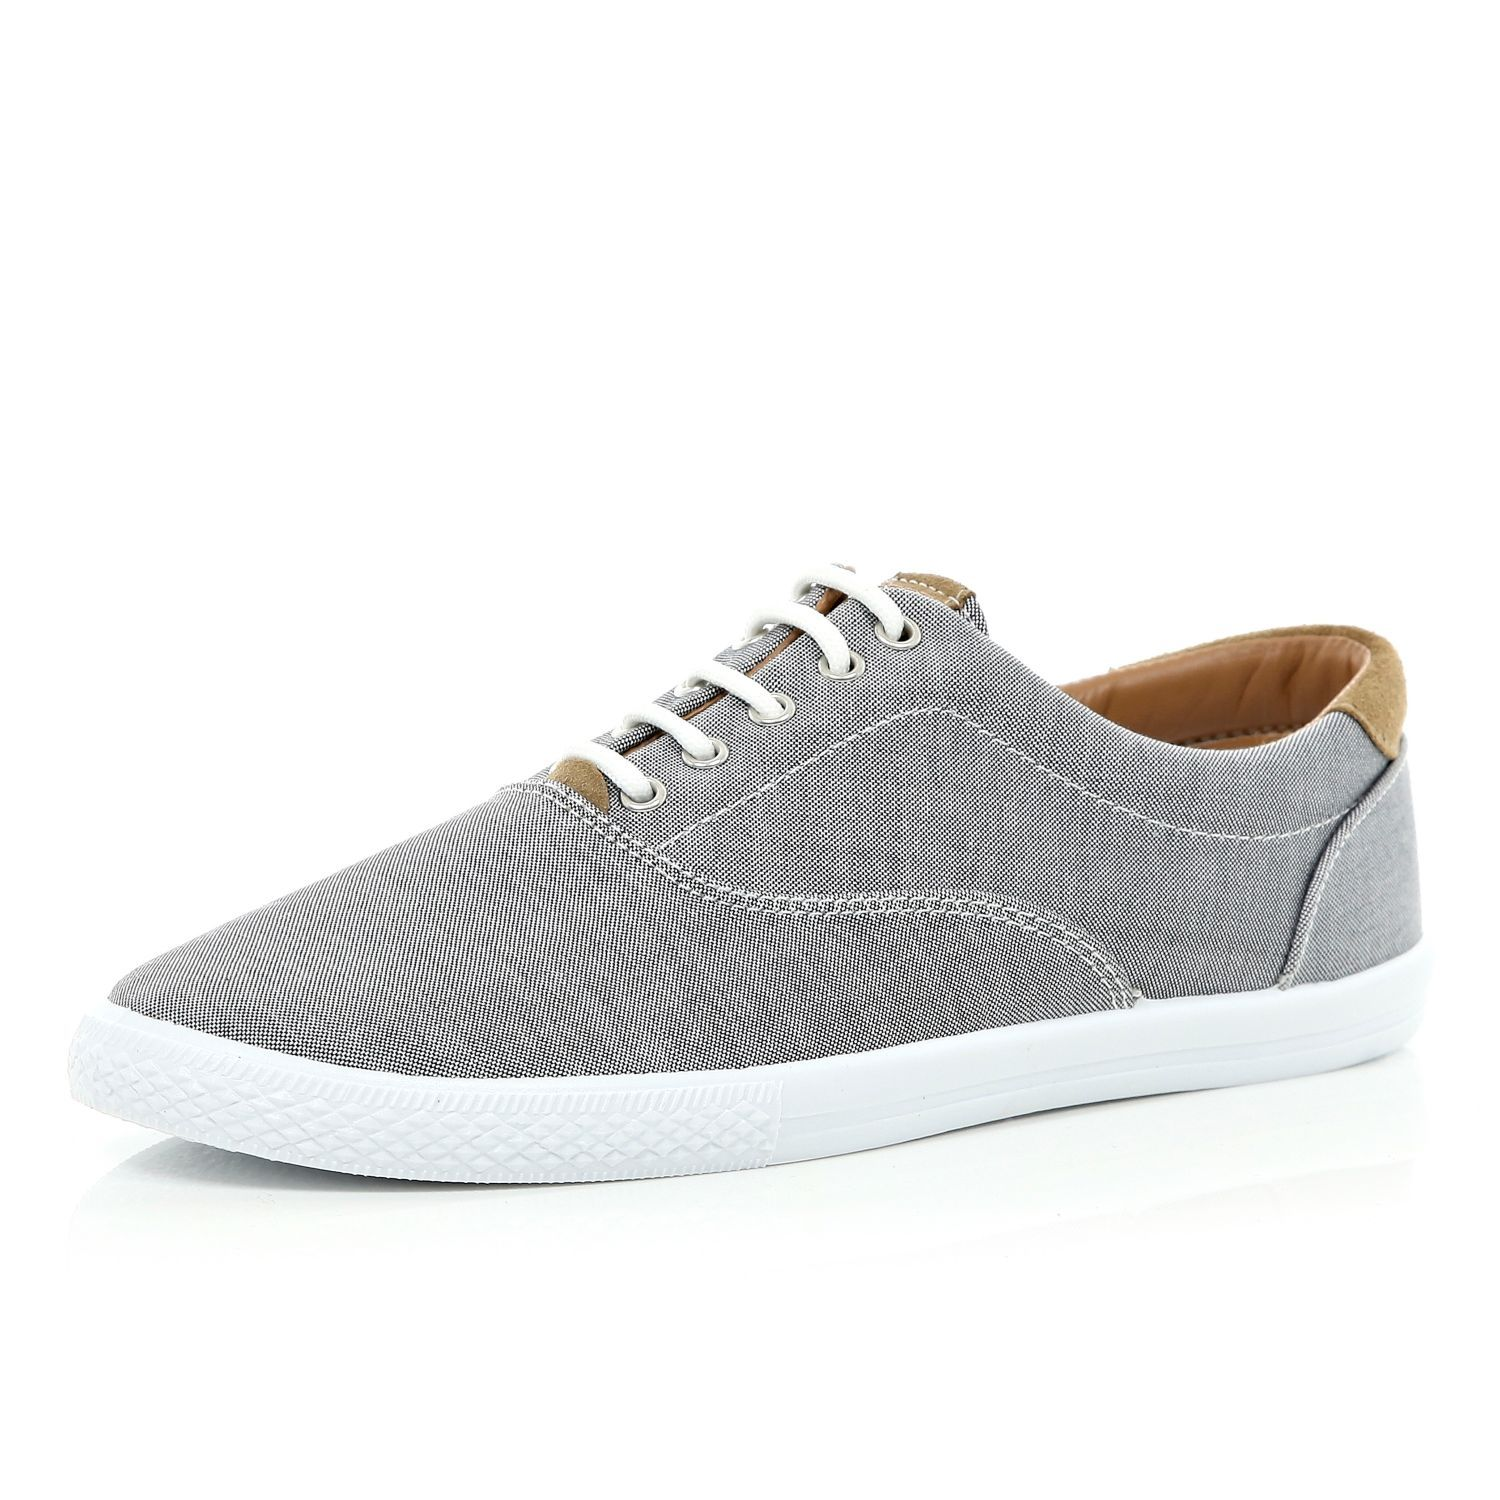 Grey Canvas Sneakers from River Island